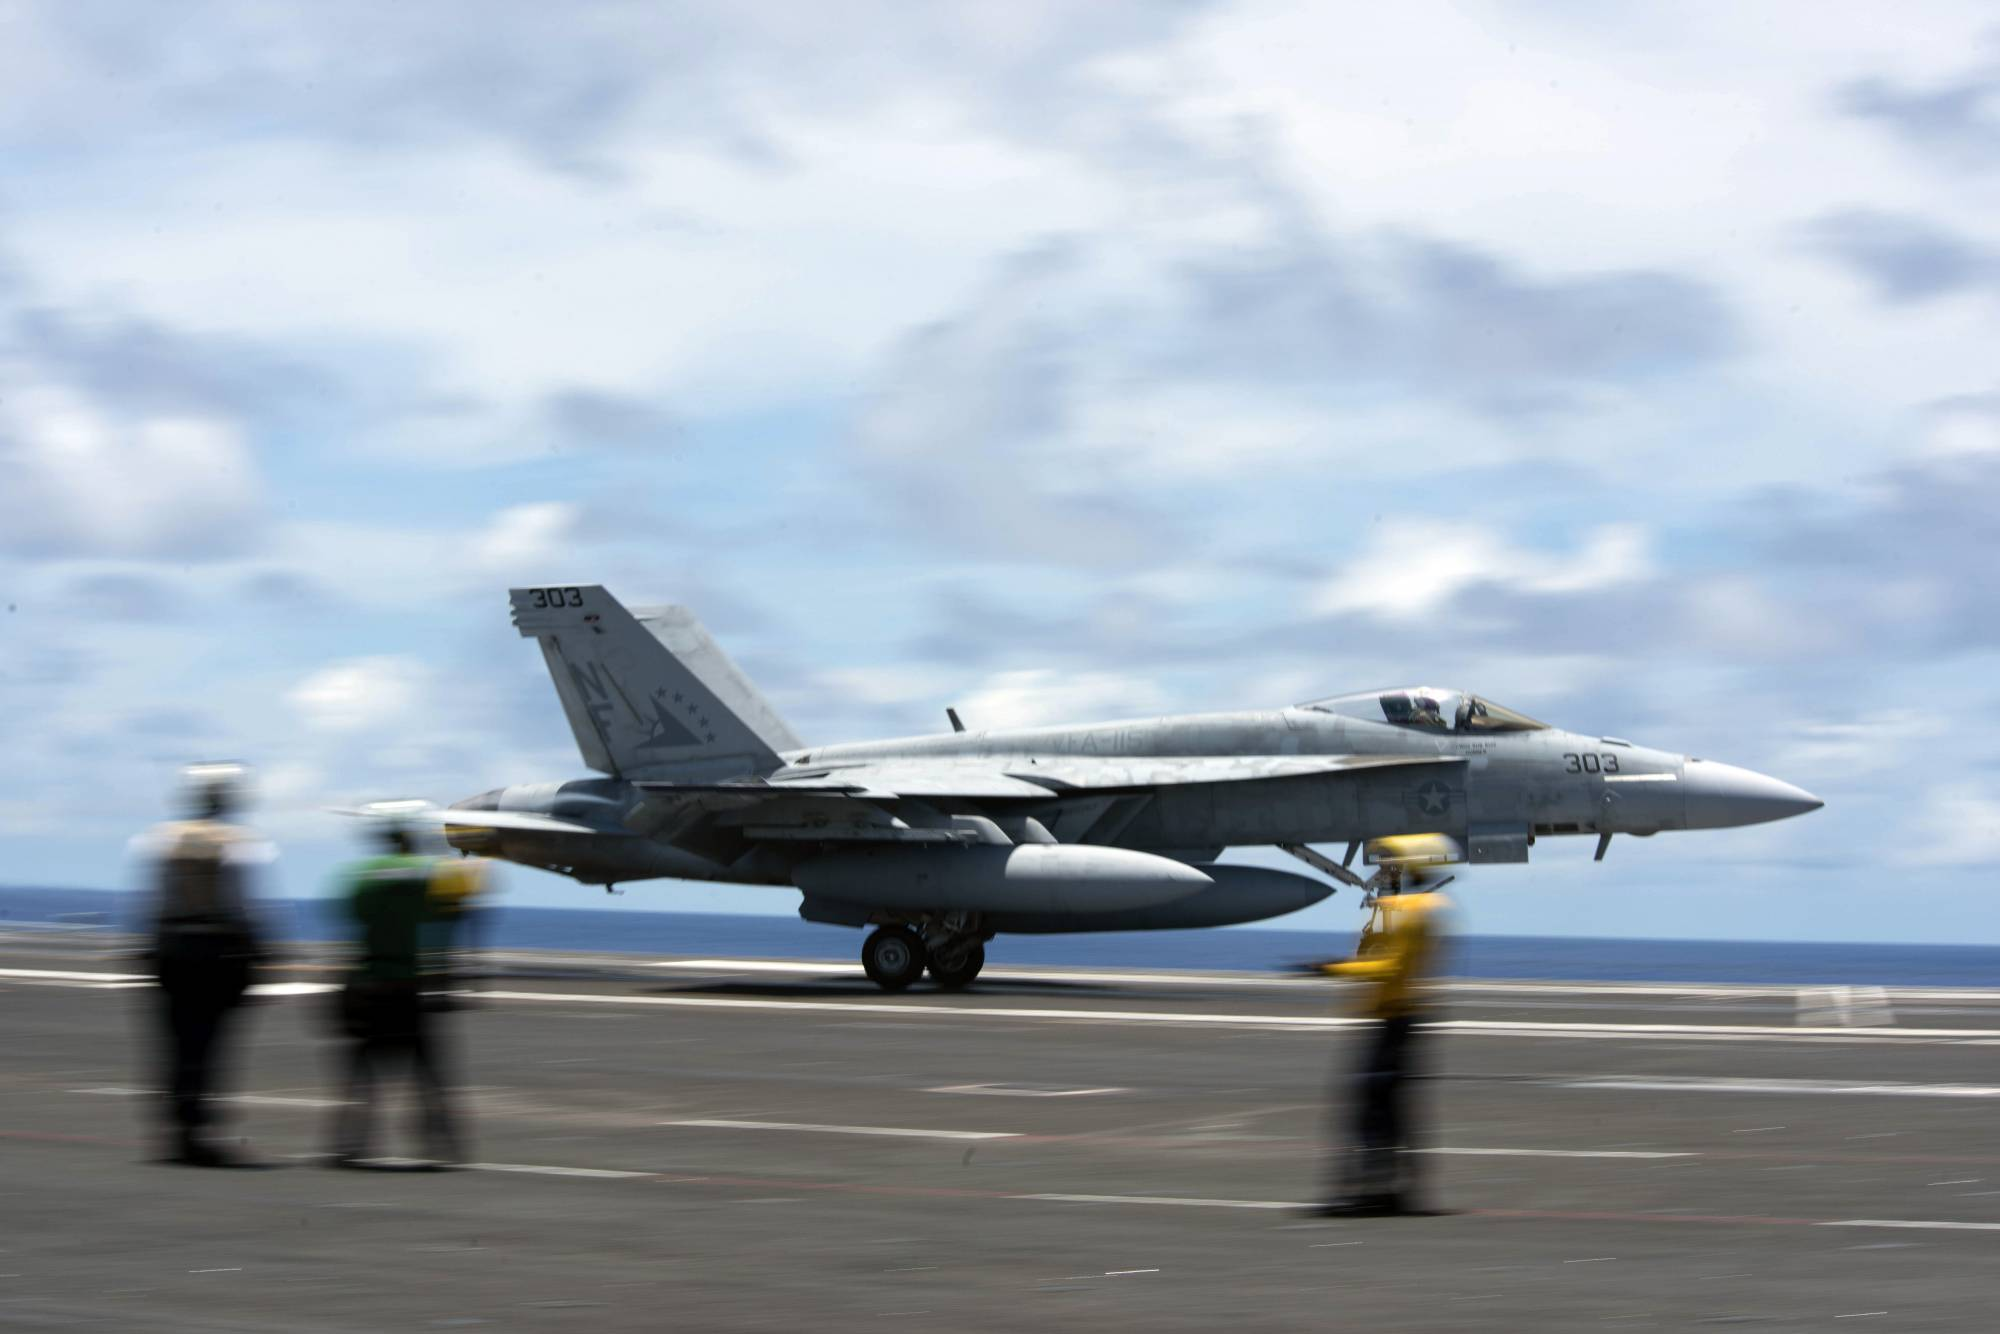 200610-N-ML137-1057 PHILIPPINE SEA (June 10, 2020) In this image provided by the U.S. Navy, an F/A-18E Super Hornet attached to the